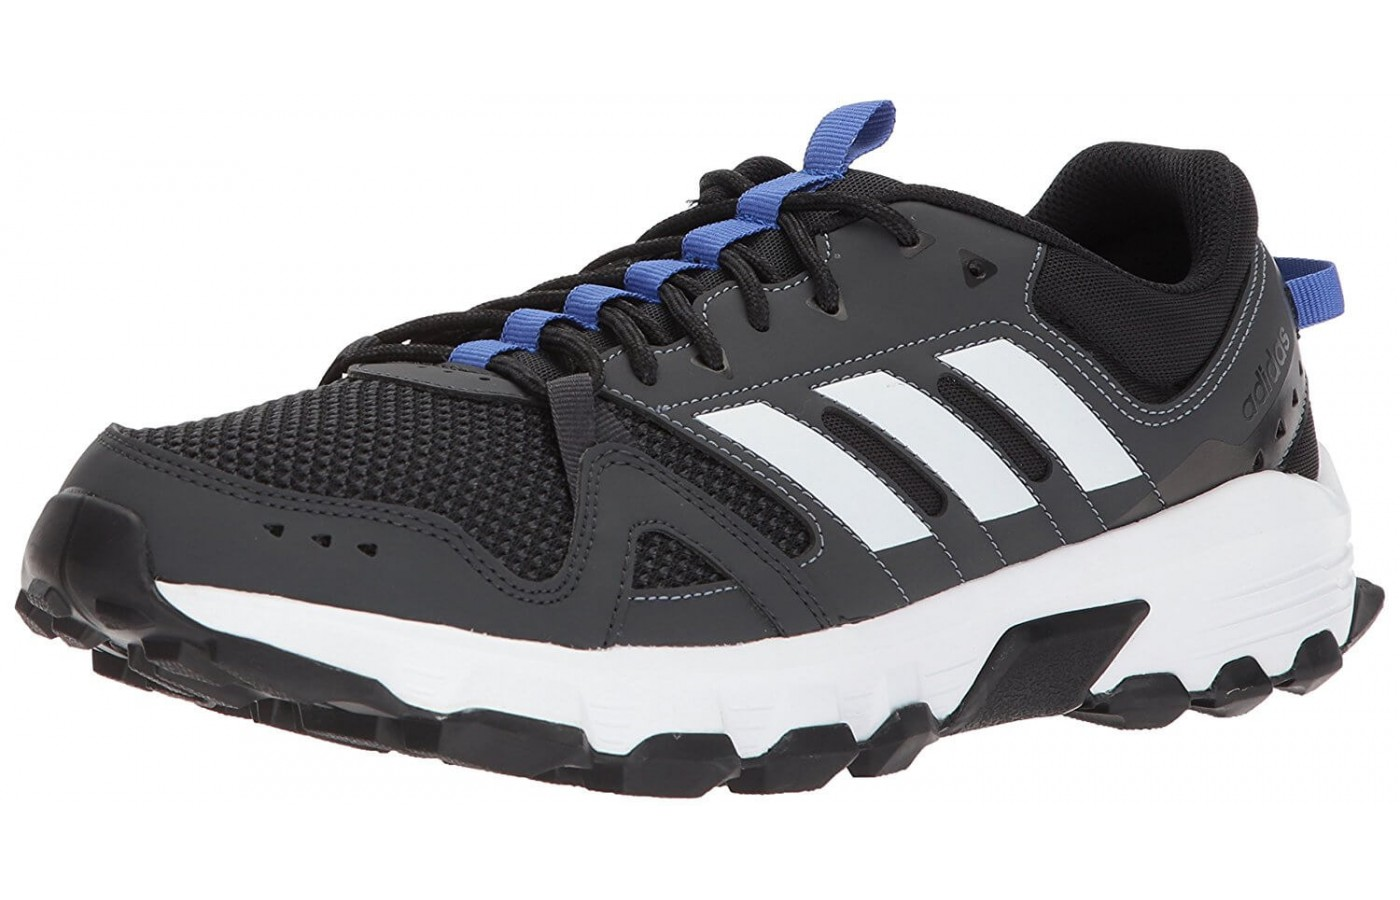 the adidas rockadia trail shoe has great traction